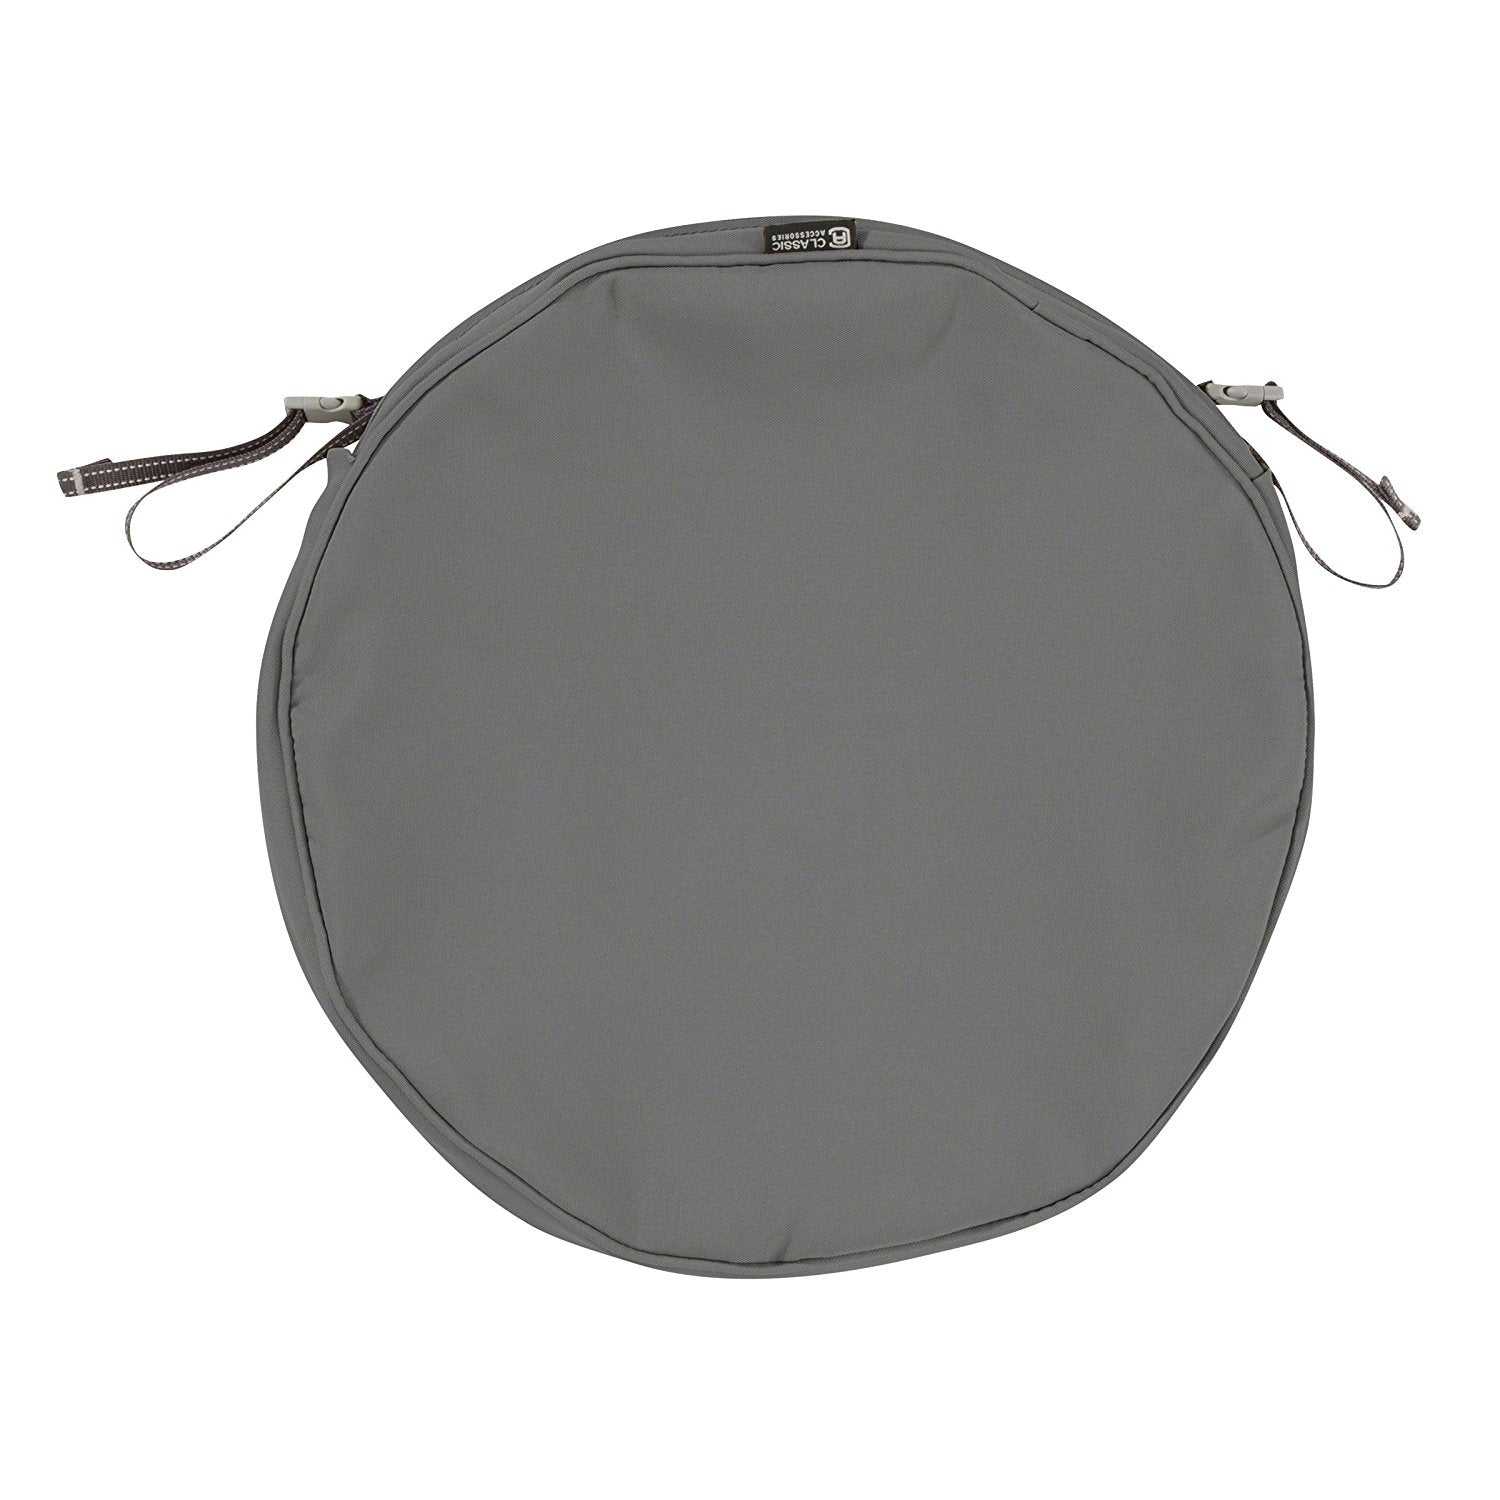 "Classic Accessories Montlake Patio Seat Cushion Slip Cover, Light Charcoal, 18"" Diameter x 2"""